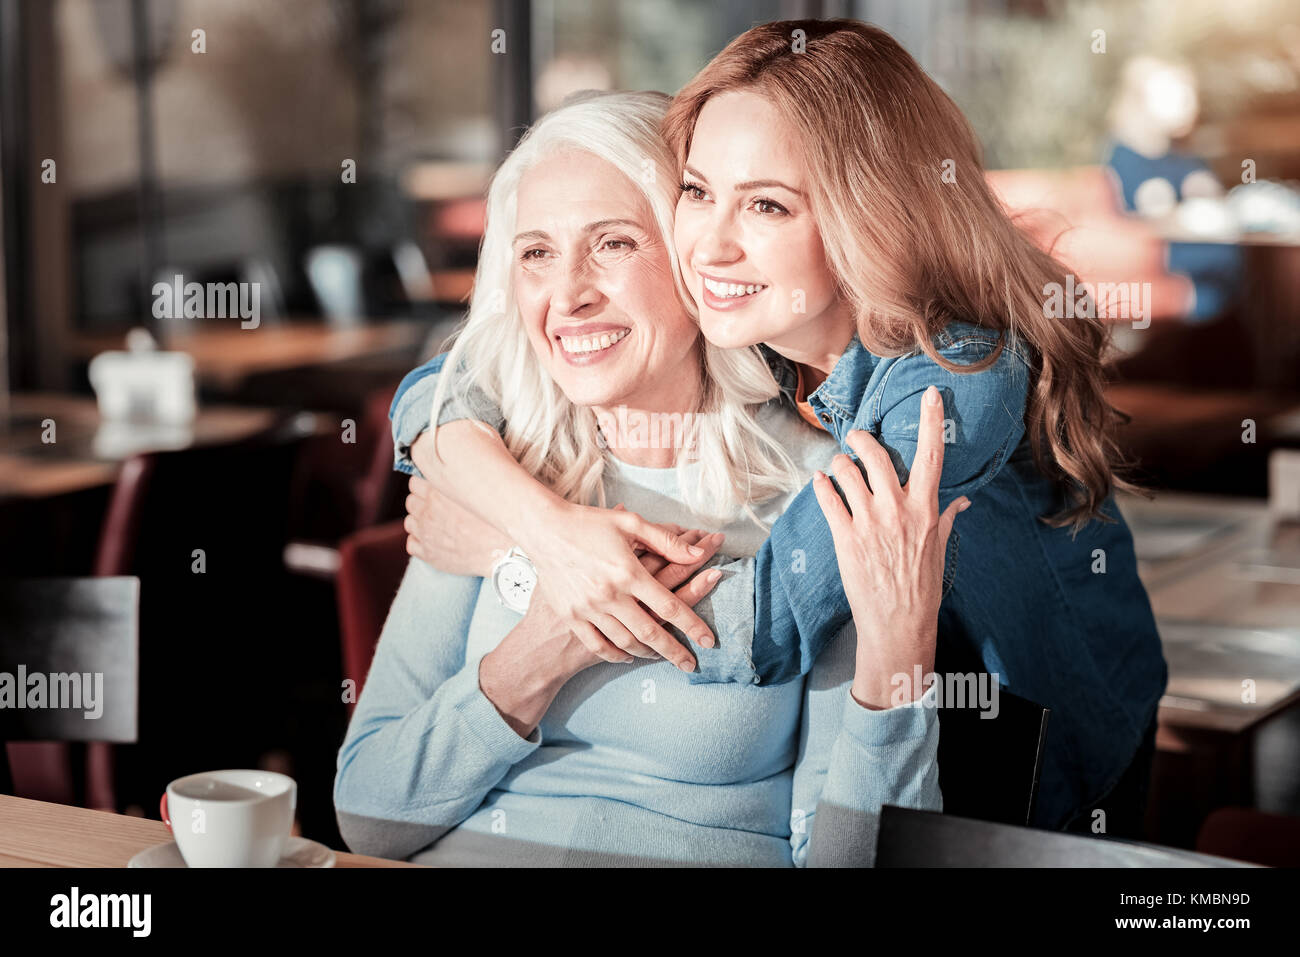 Positive senior woman laughing while her granddaughter hugging her - Stock Image